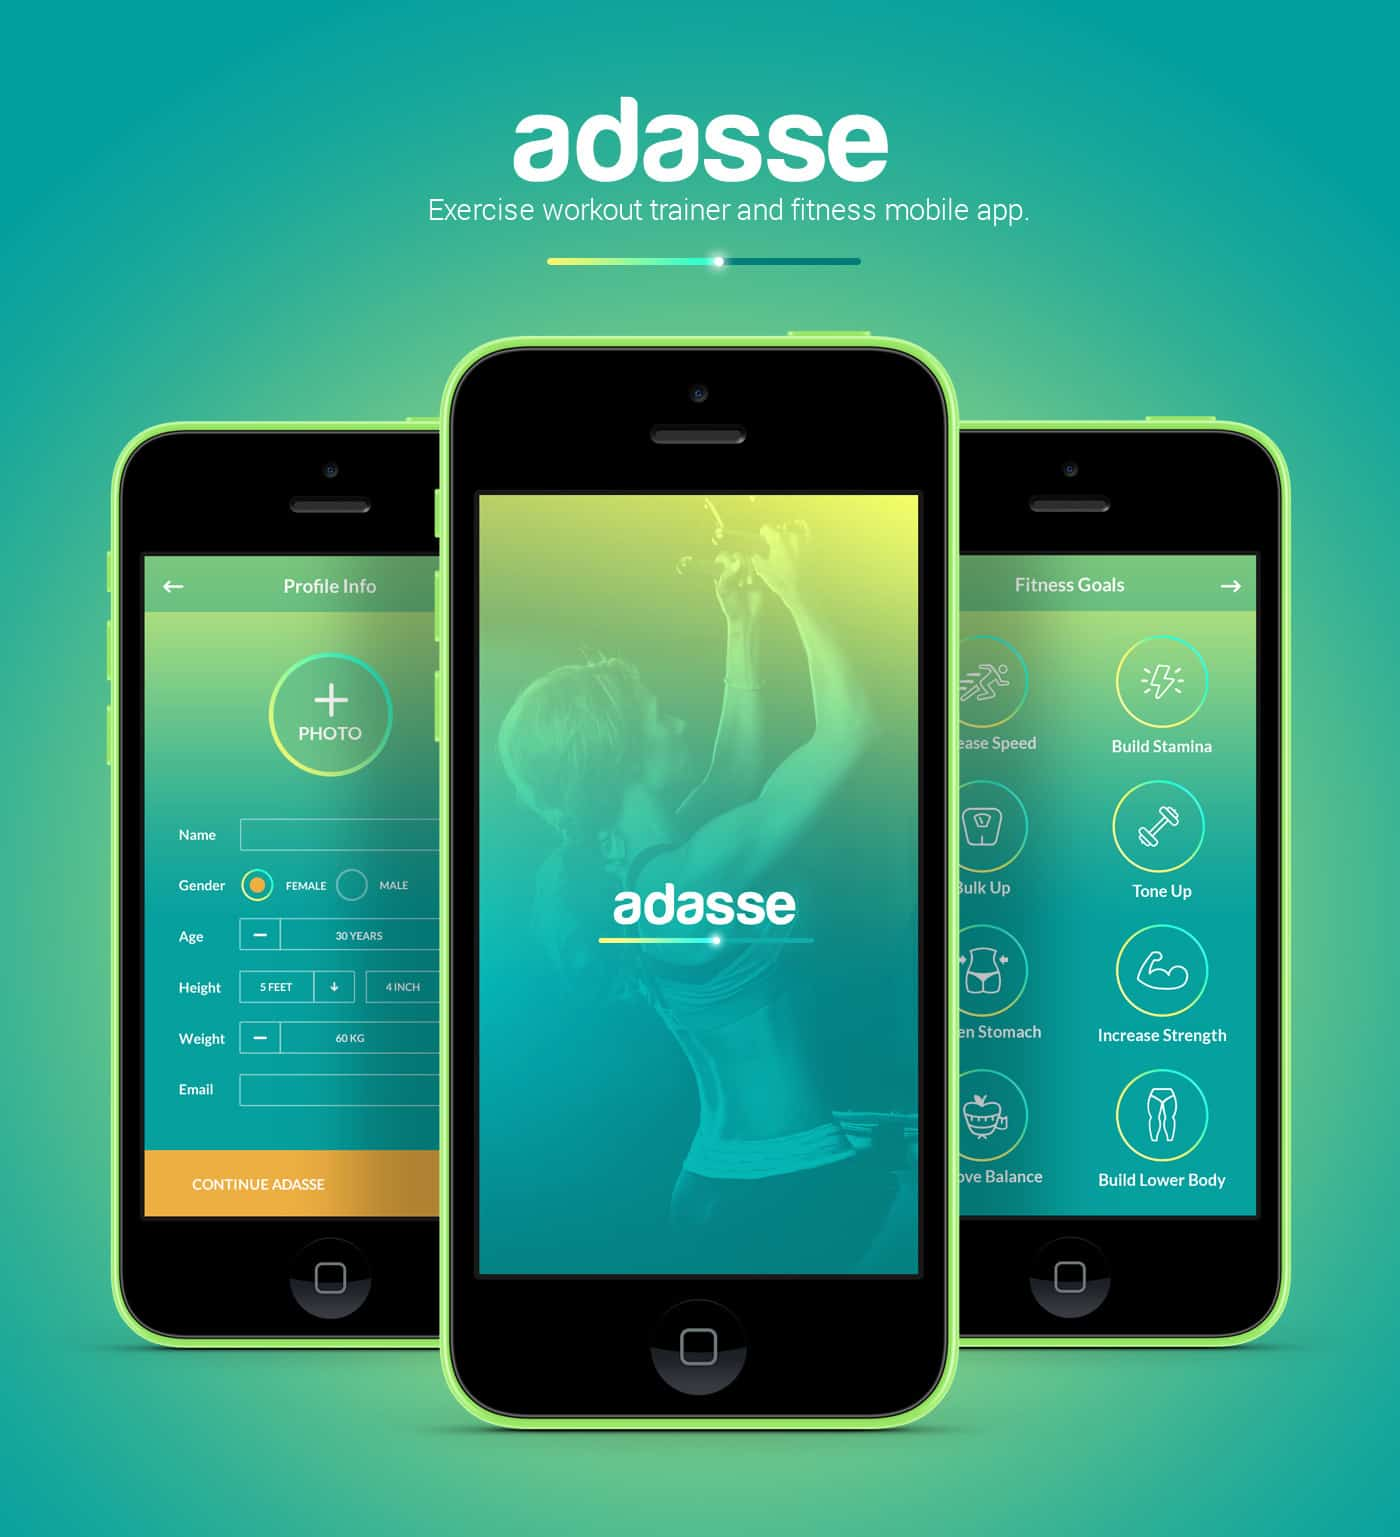 Adasse: Gym workout mobile app by Naresh Kumar - Design Ideas